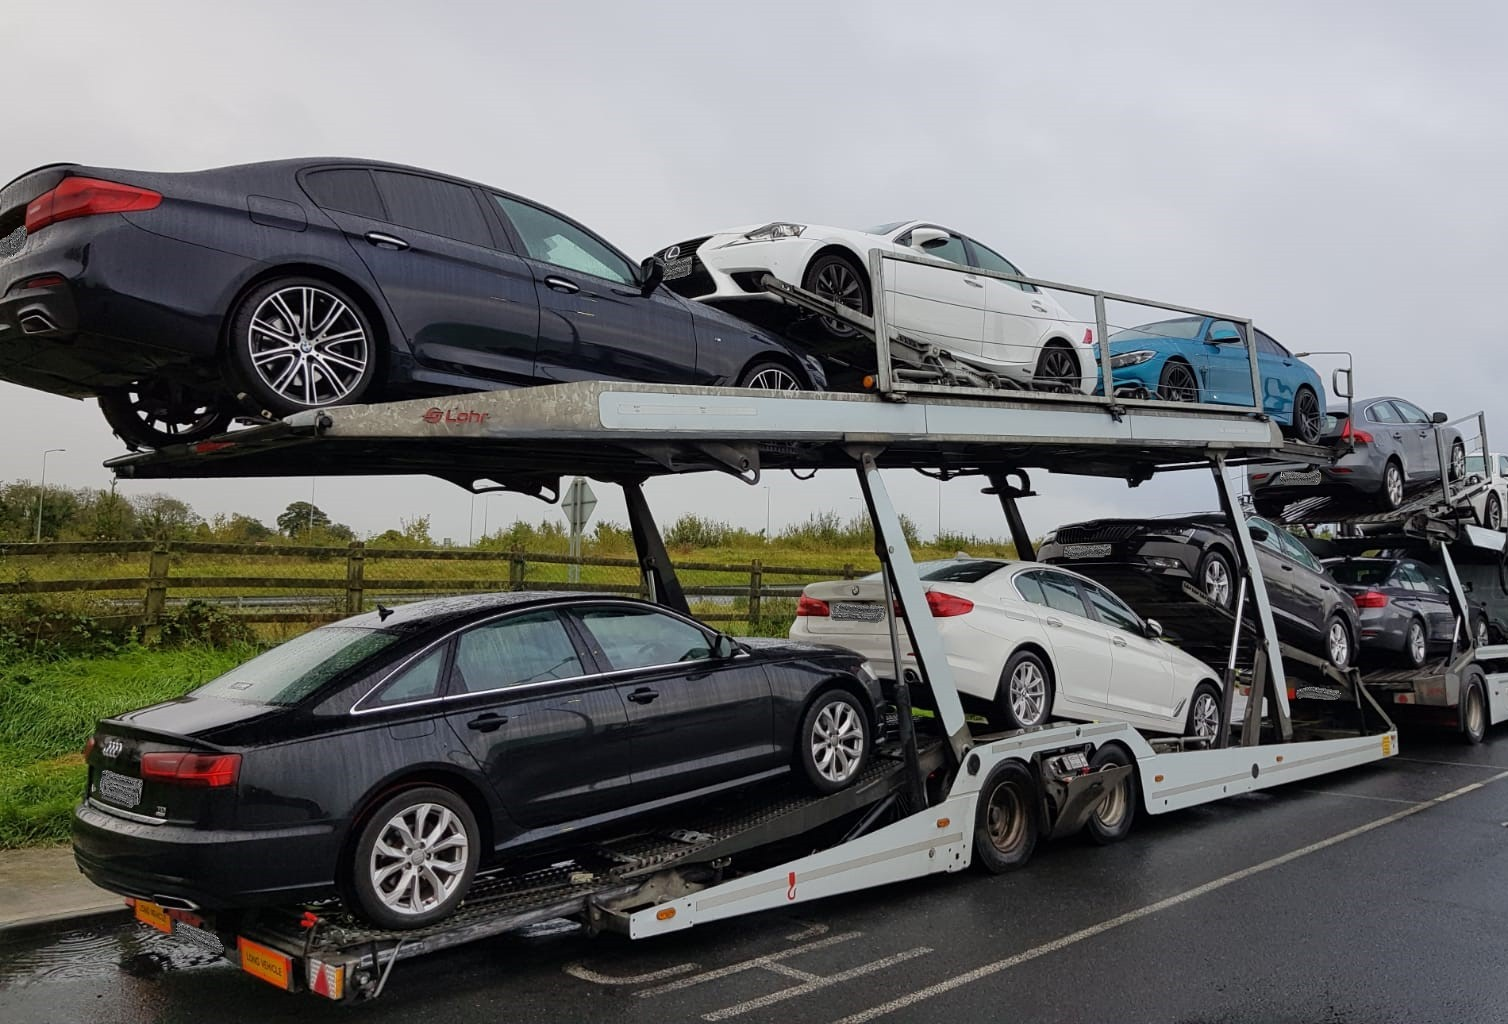 Seized-cars-ireland-5